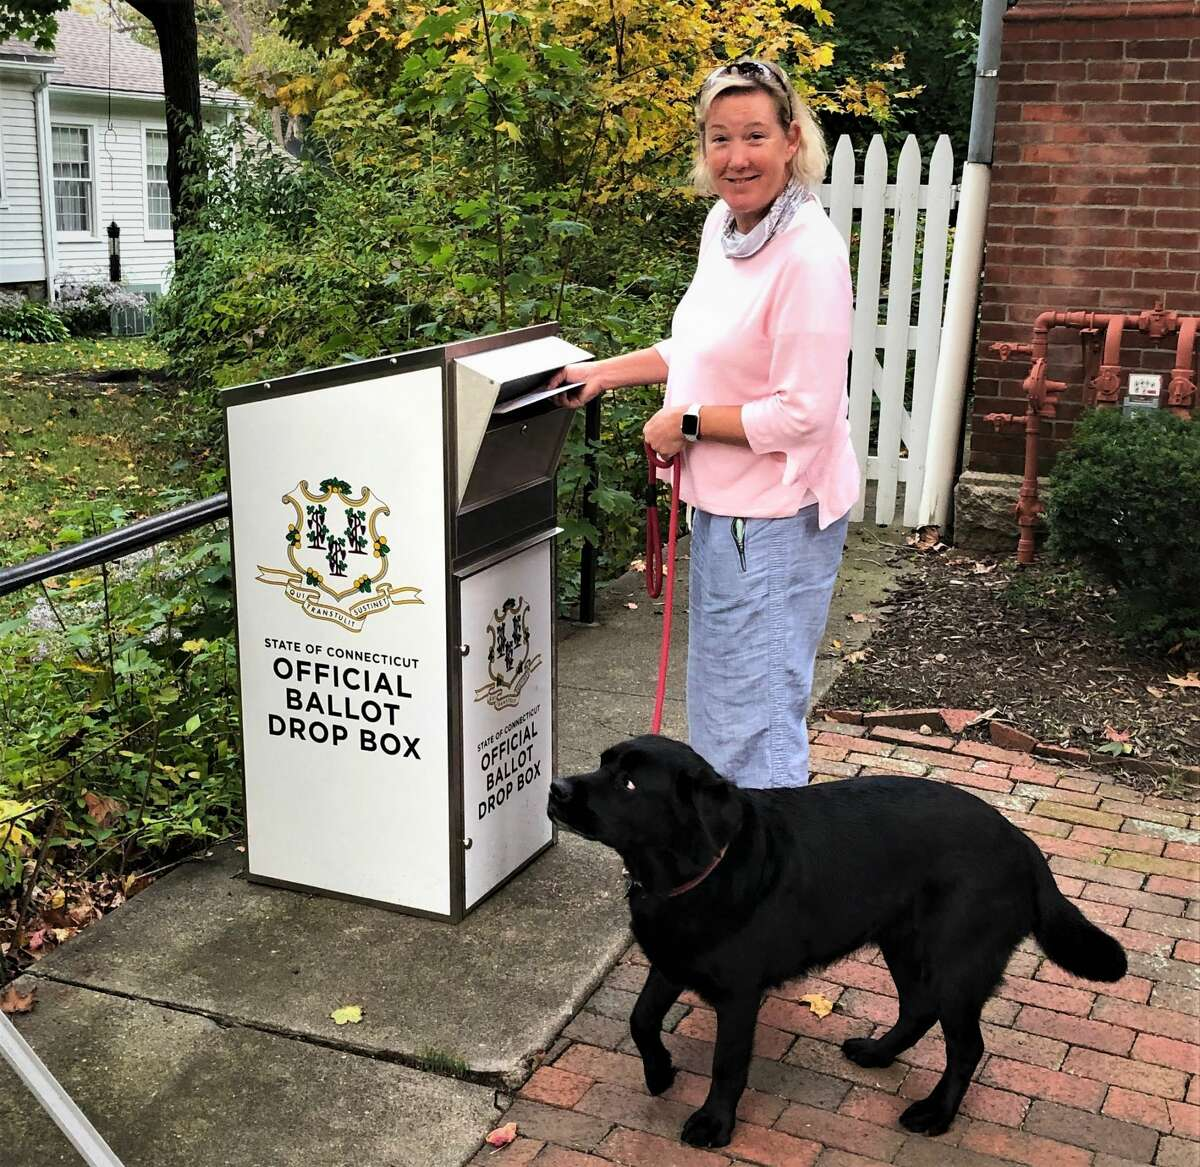 Stephanie Johnson dropped off her absentee ballot at Guilford town hall last week, posing as her husband, Phil Johnson, captured the historic moment.